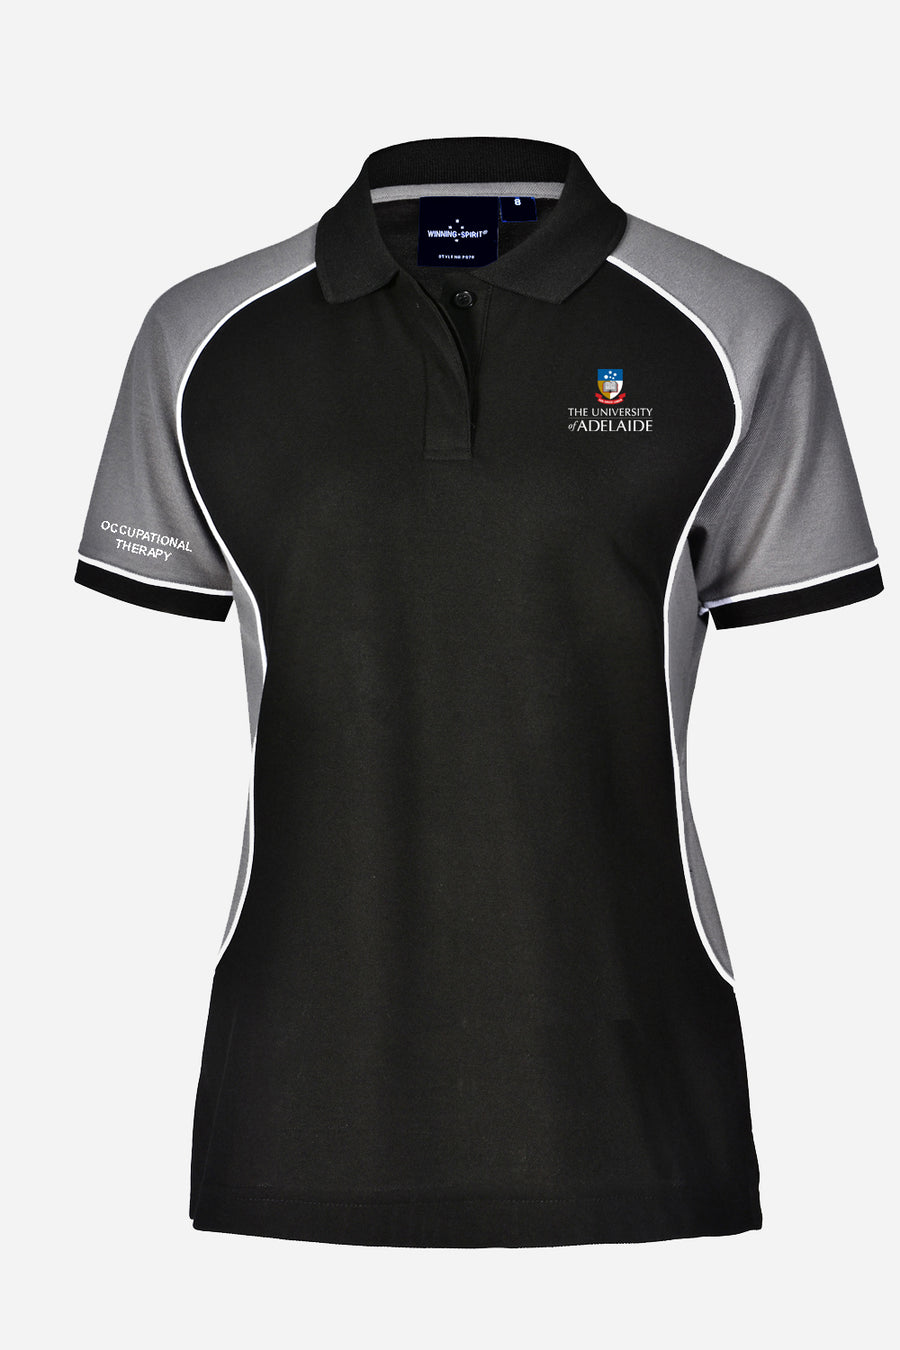 Occupational Therapy polo women's